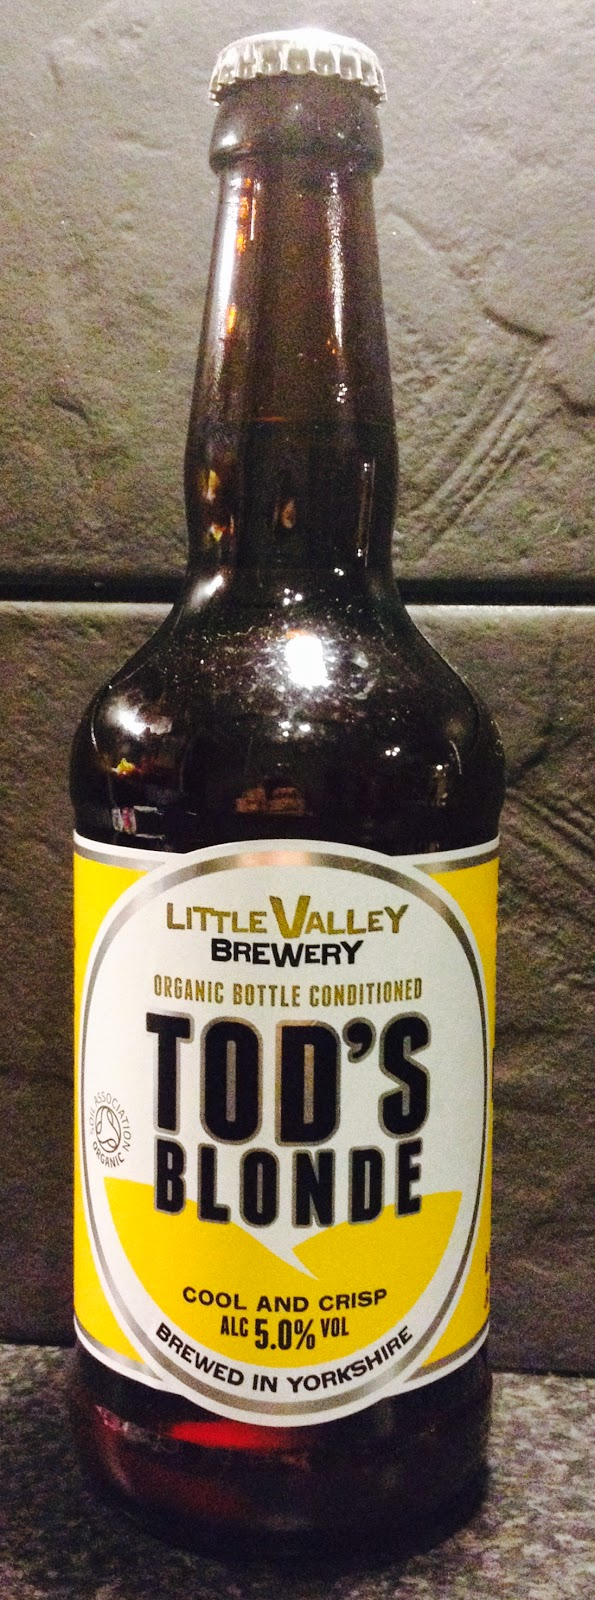 Tods Blonde (Little Valley Brewery)